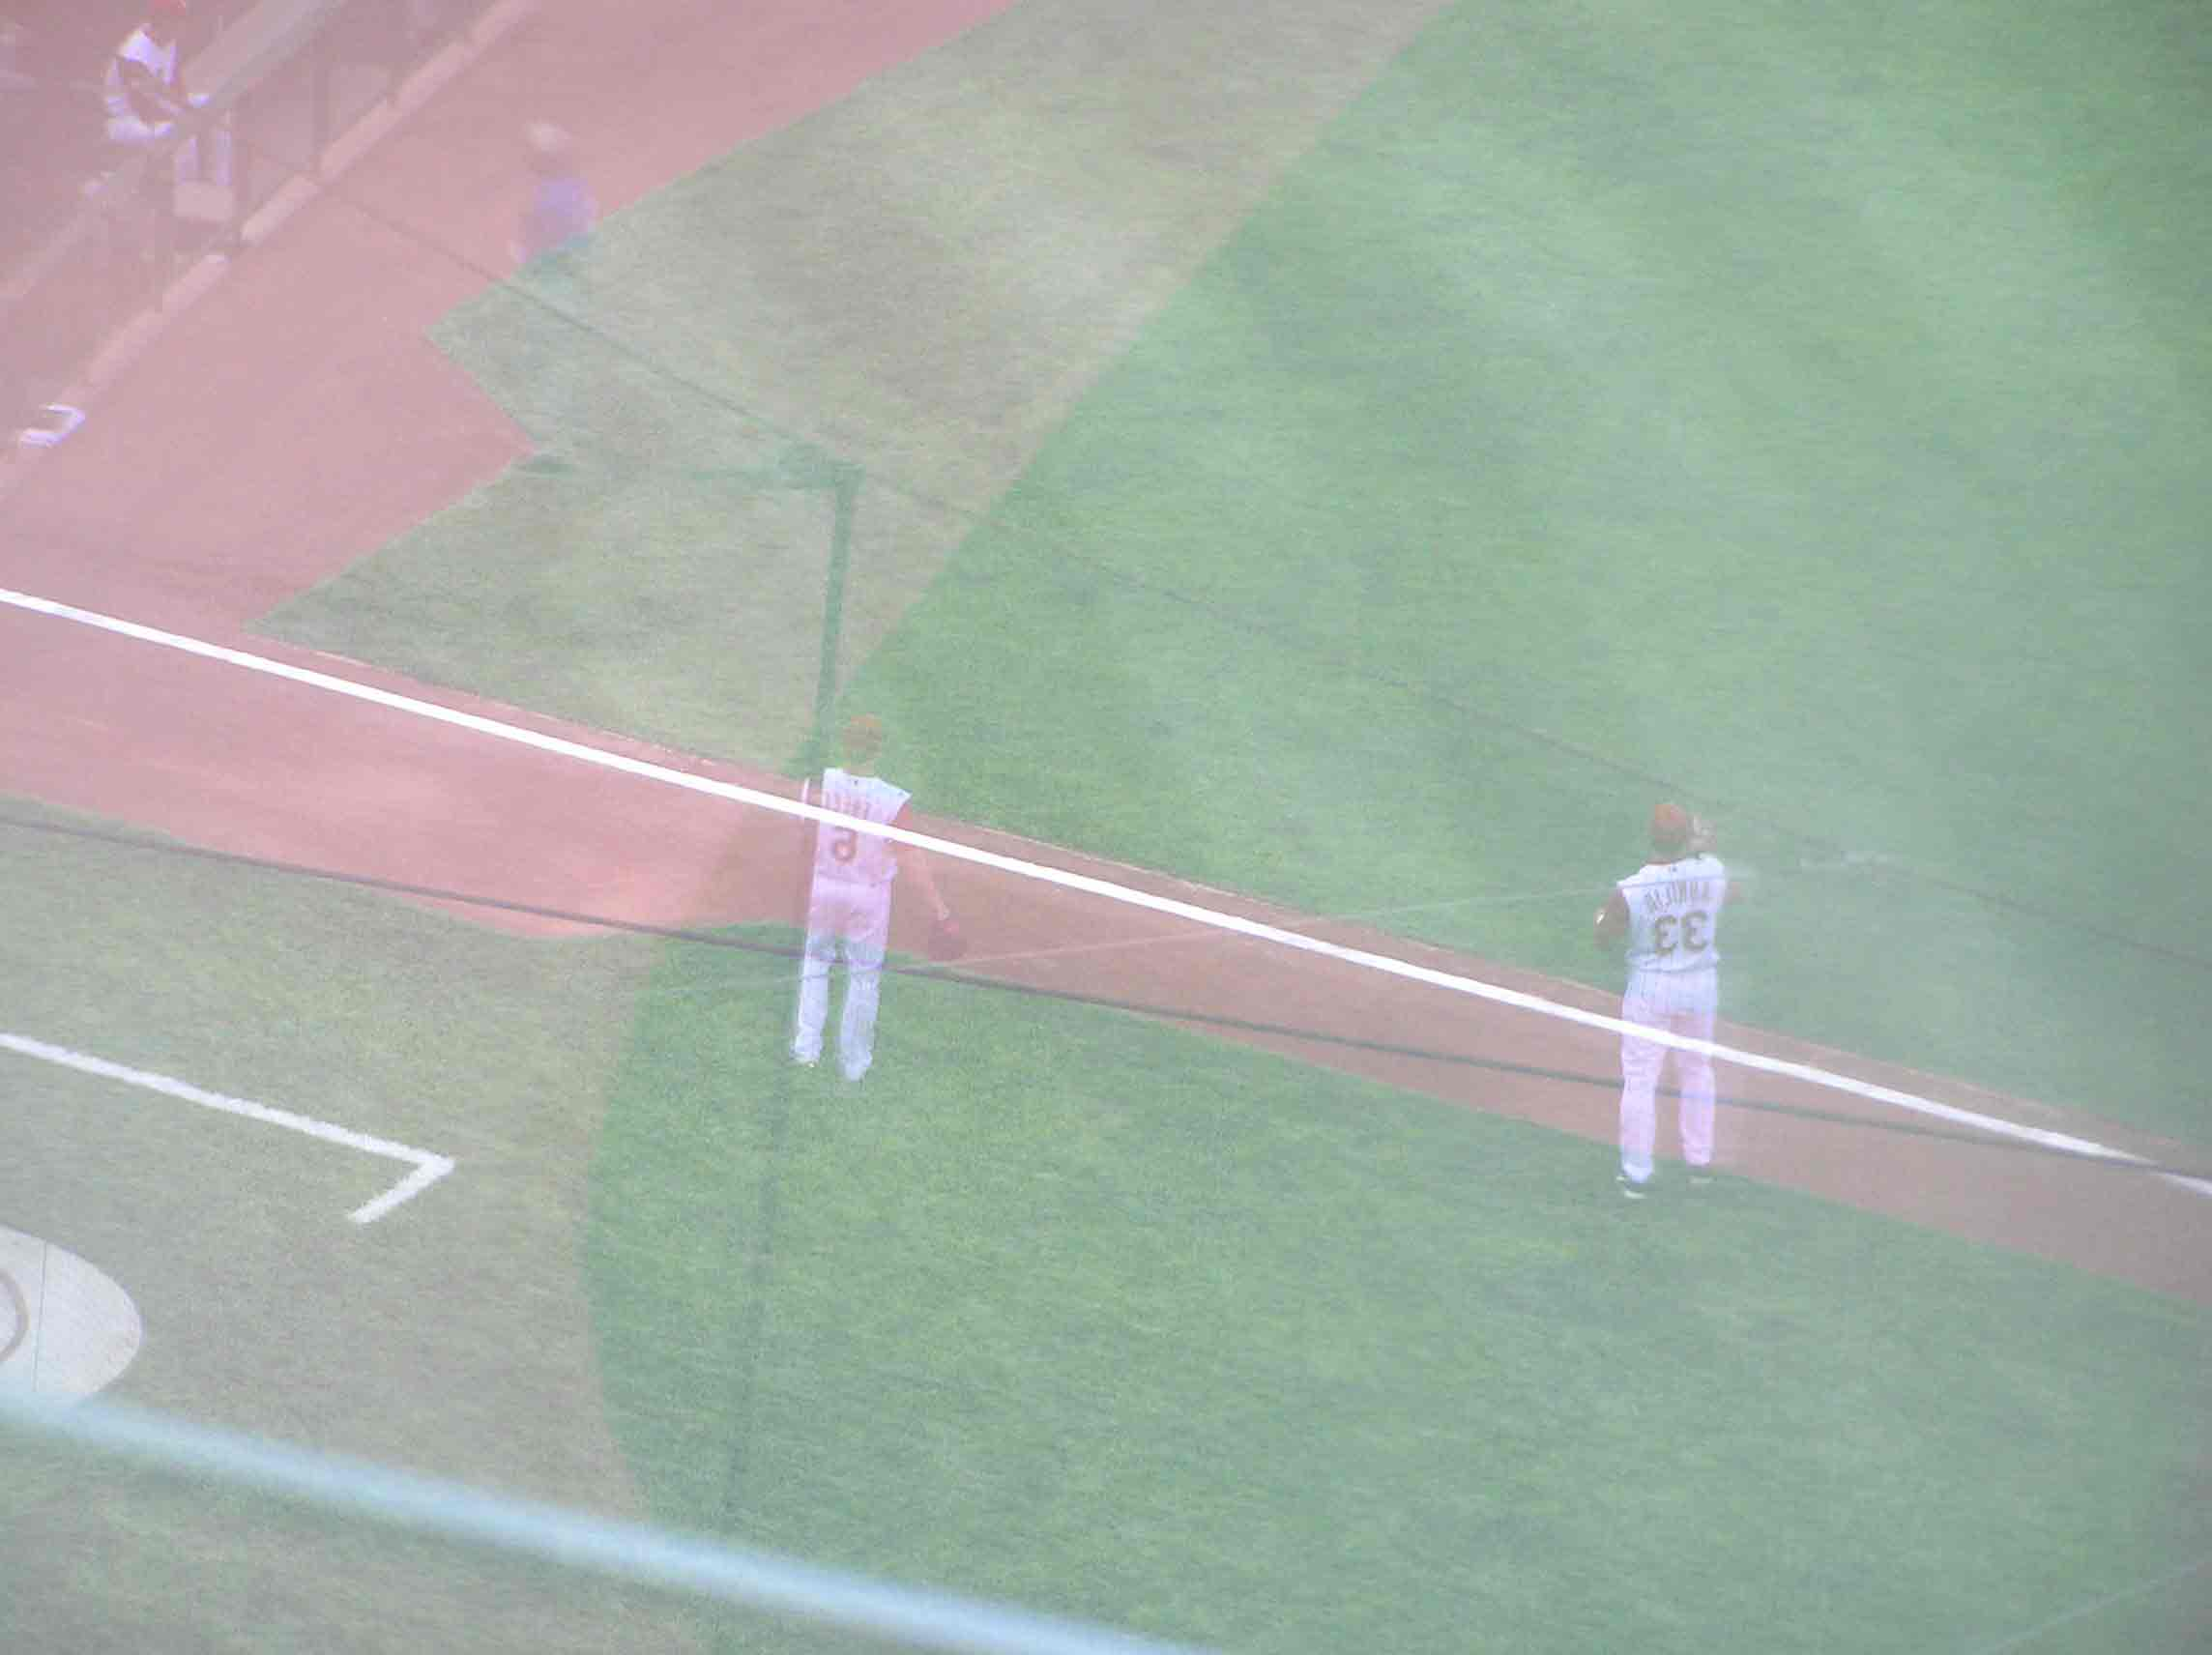 gabpreflection